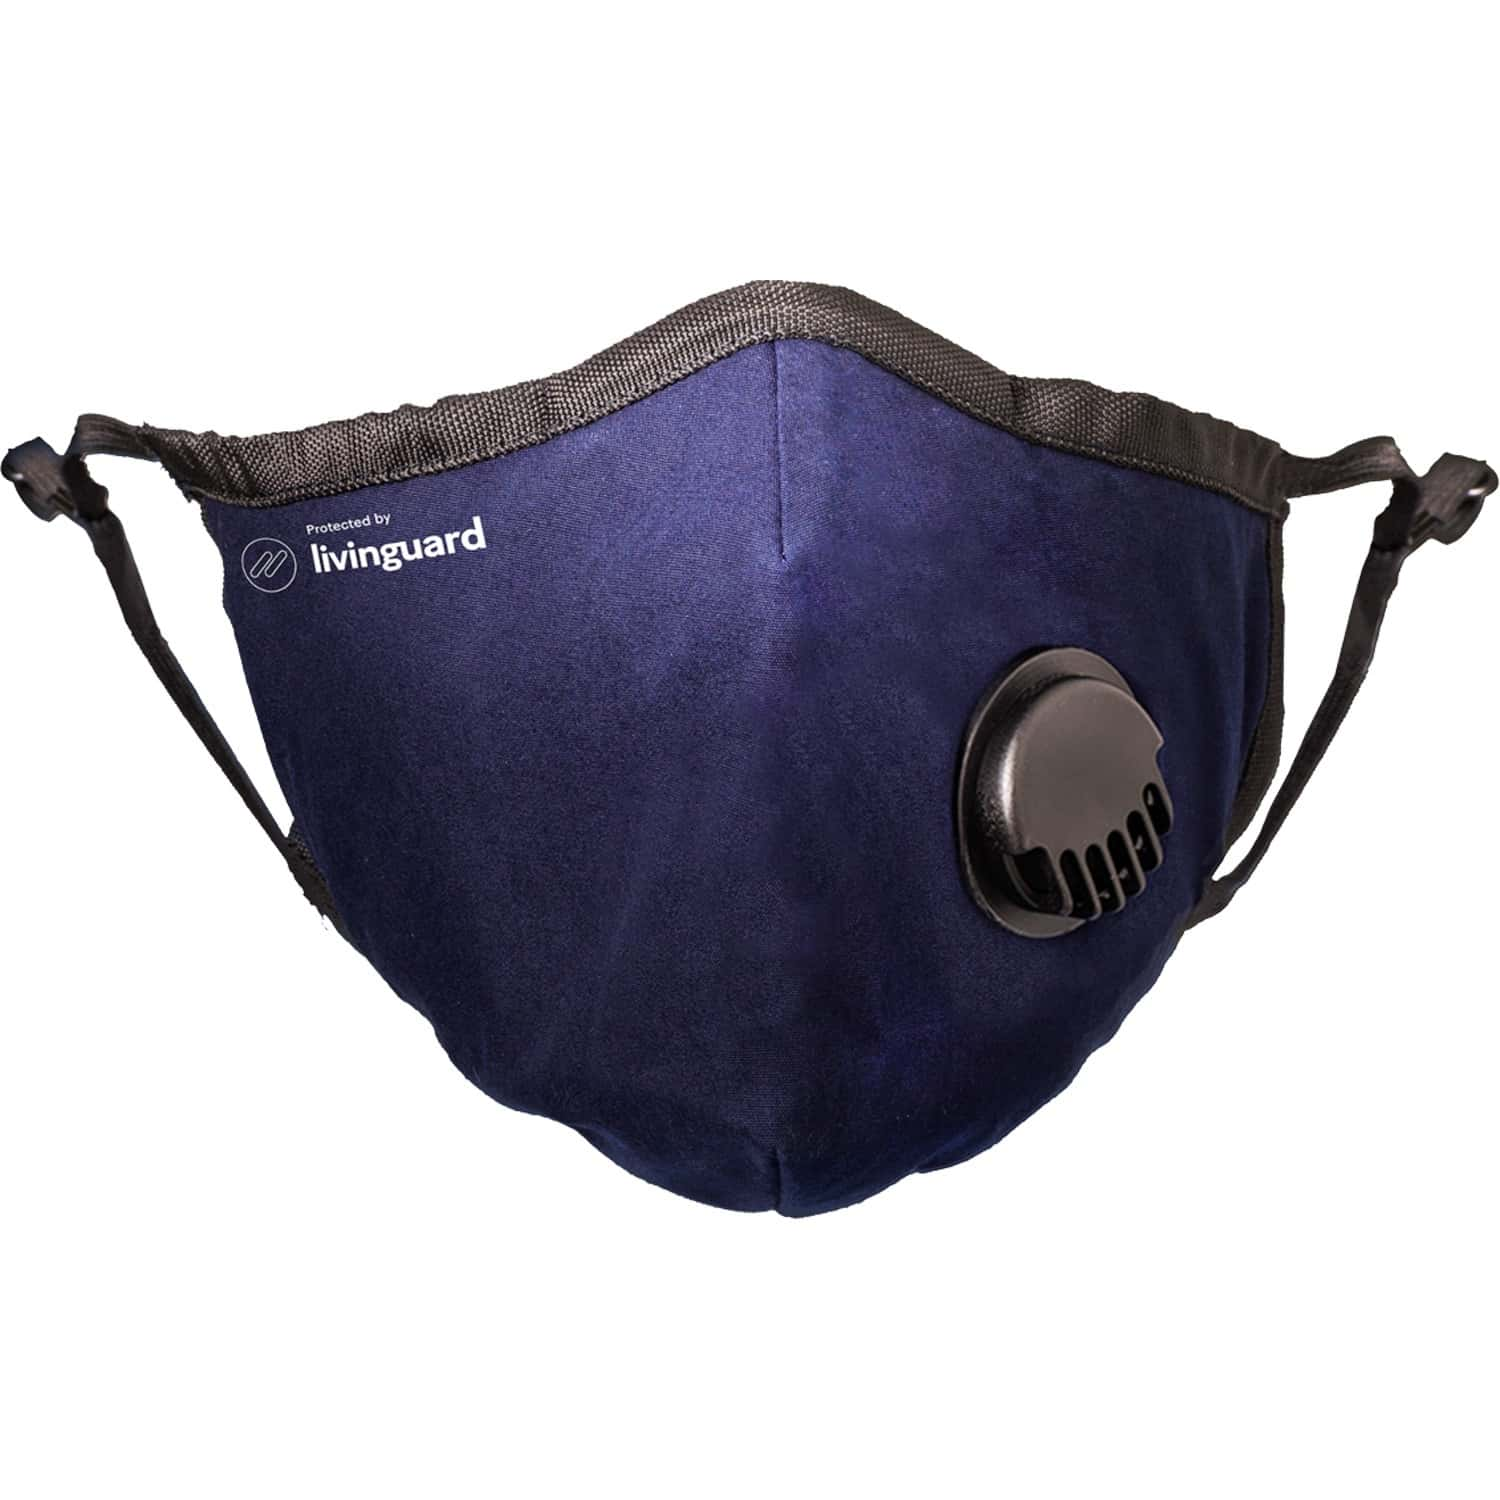 Livinguard Ultra Mask | 4 Layers | >98% Filtration | Anti-viral & Anti-bacterial | Non-toxic & Safe | Washable & Reusable | Cotton Face Mask | Large Bombay Blue